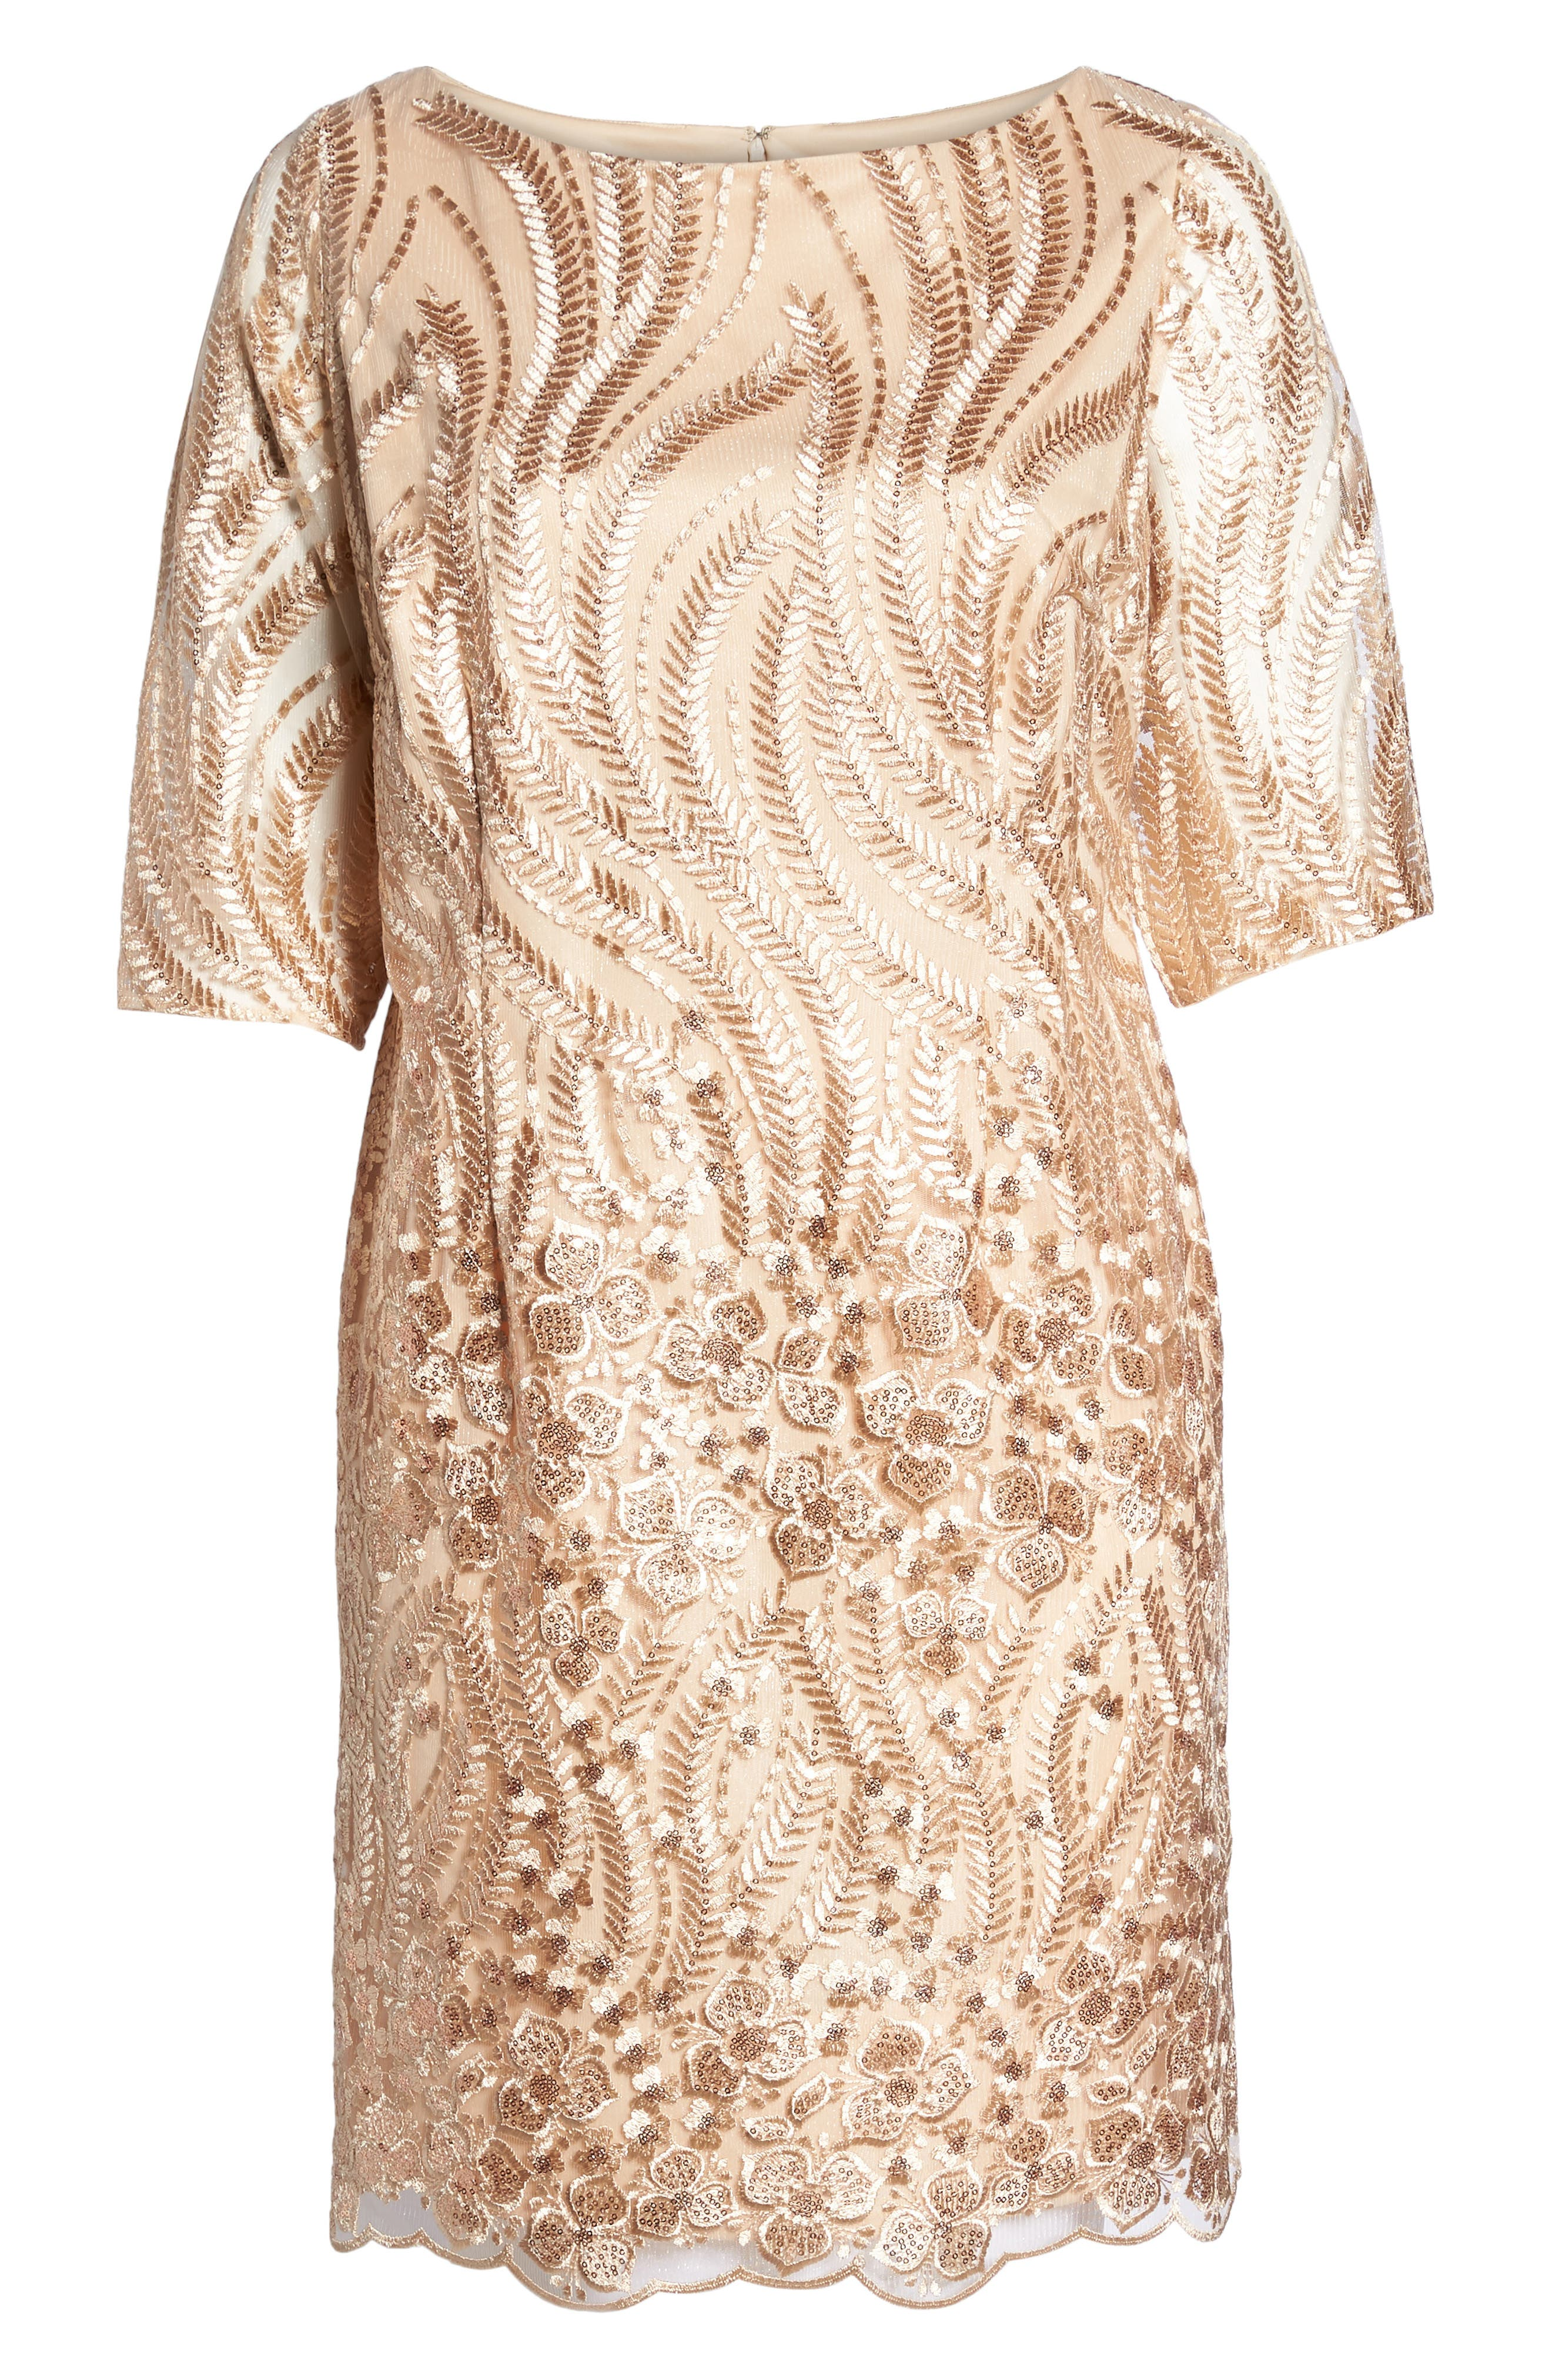 Sequin Embroidered Lace Sheath Dress,                             Alternate thumbnail 6, color,                             CHAMPAGNE